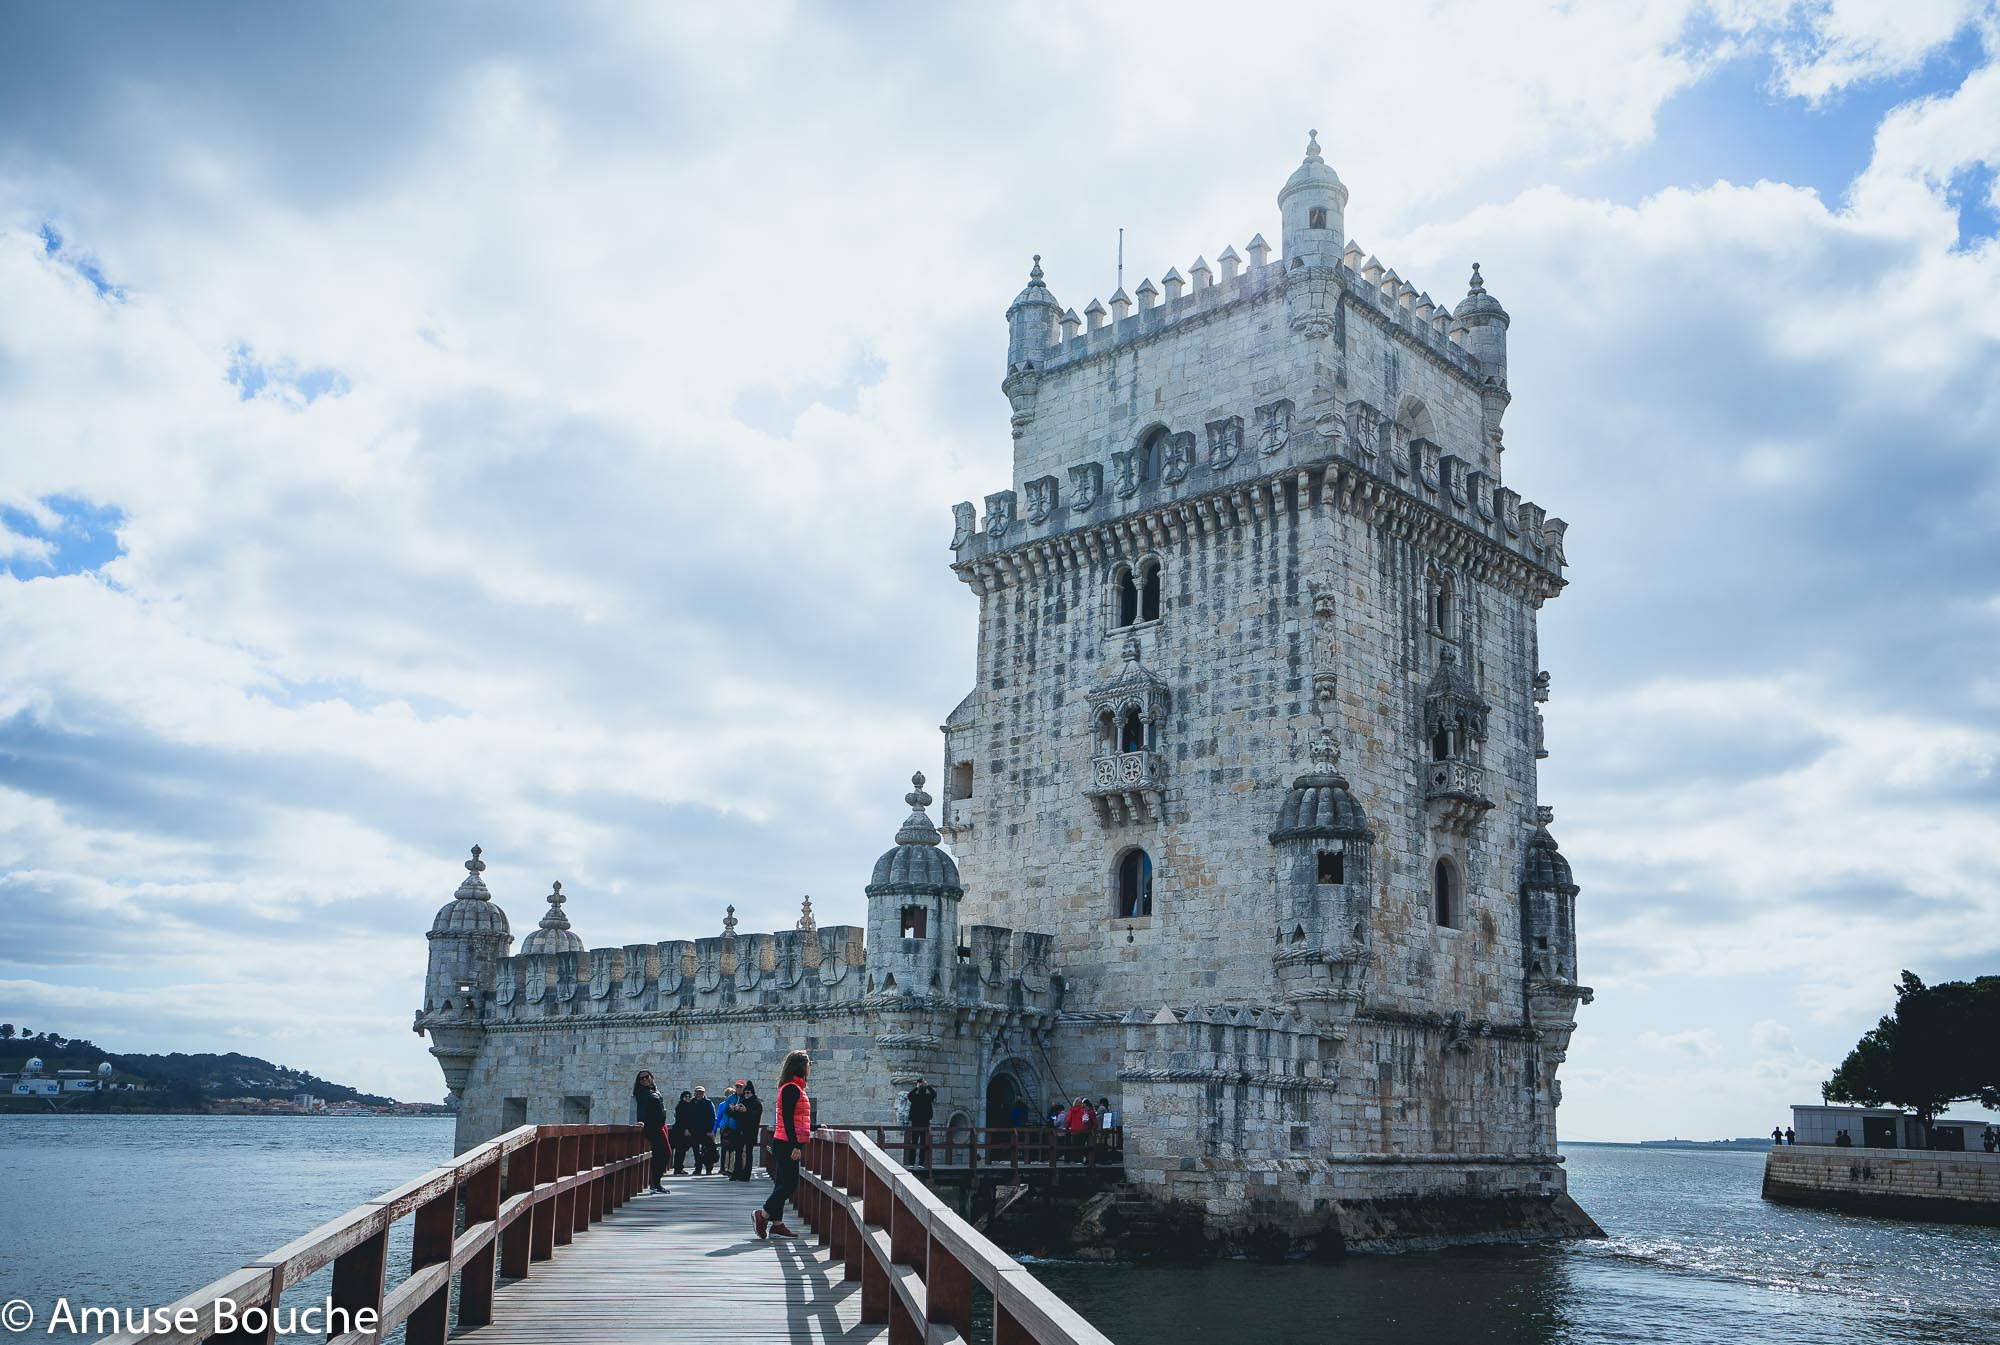 Altis Hotel Lisabona Belem Tower